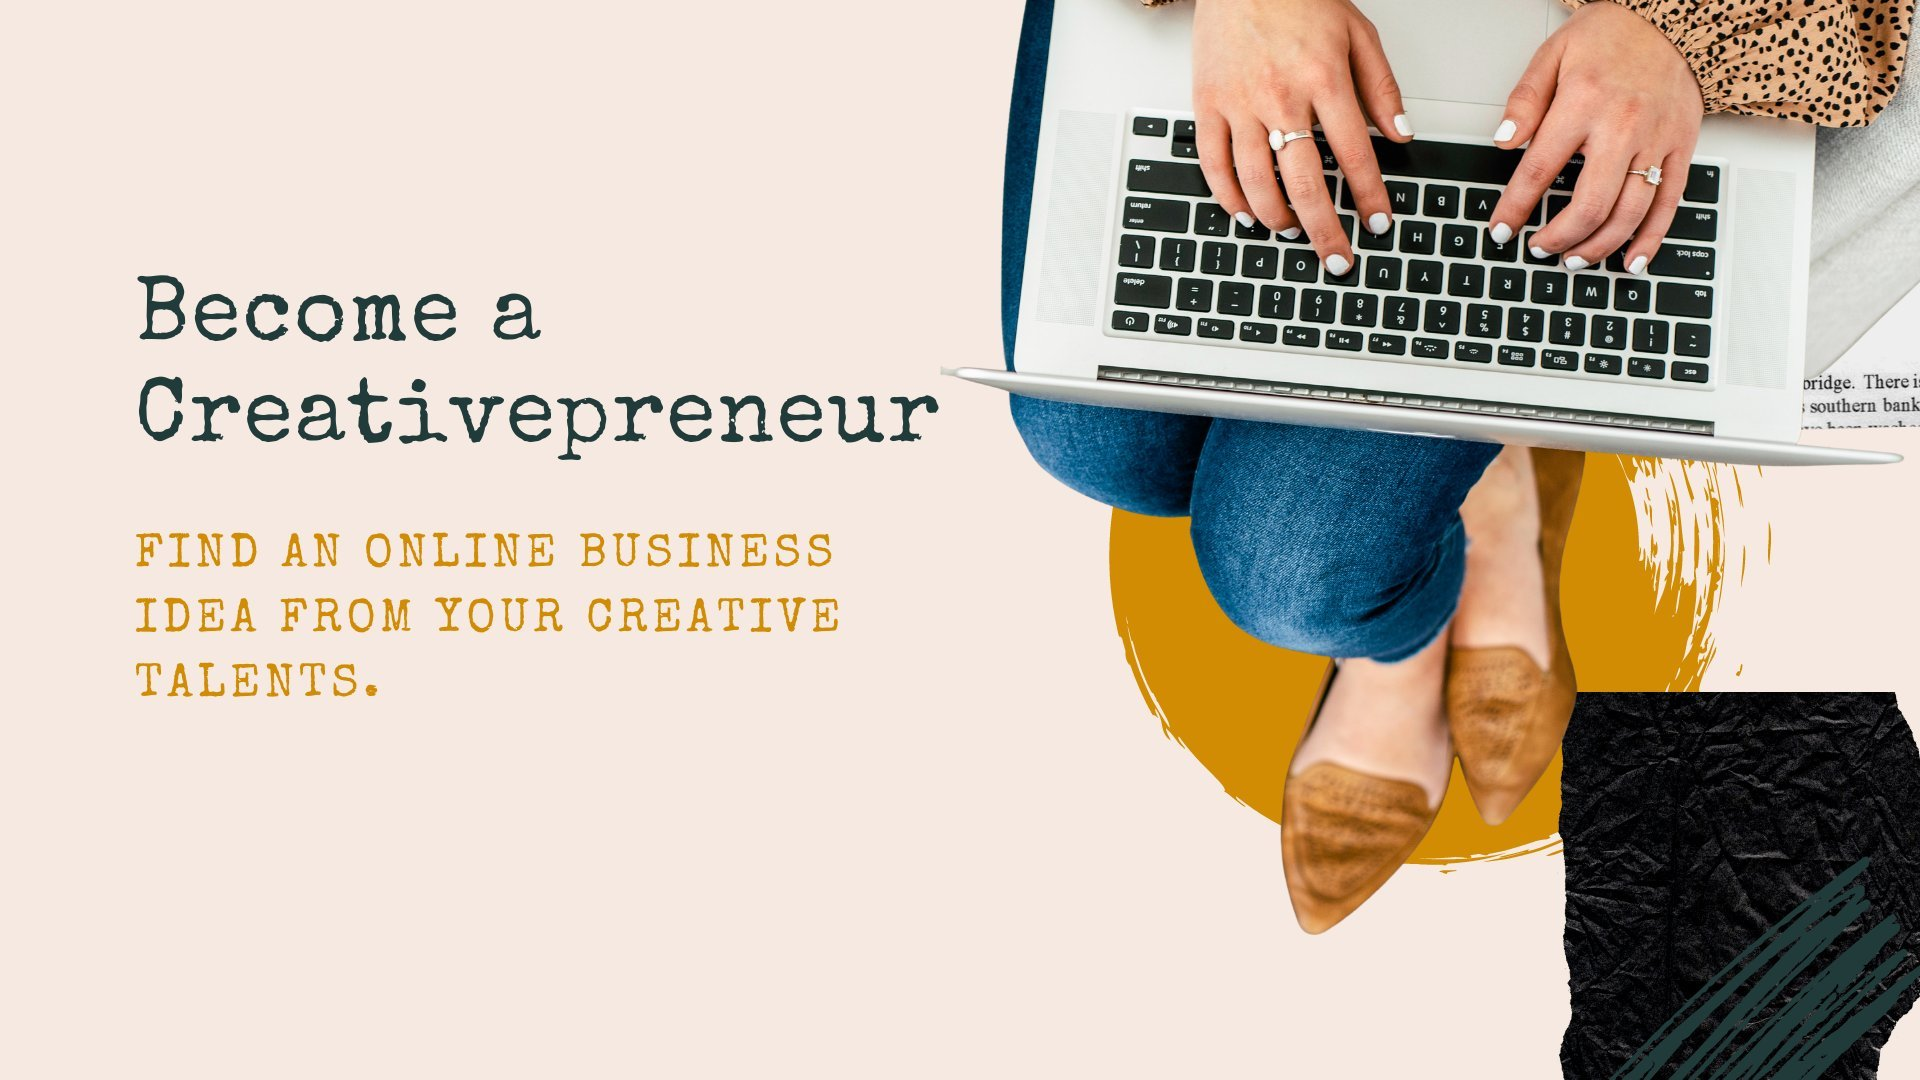 Become a Creativepreneur: Find an Online Business Idea from Your Creative Talents